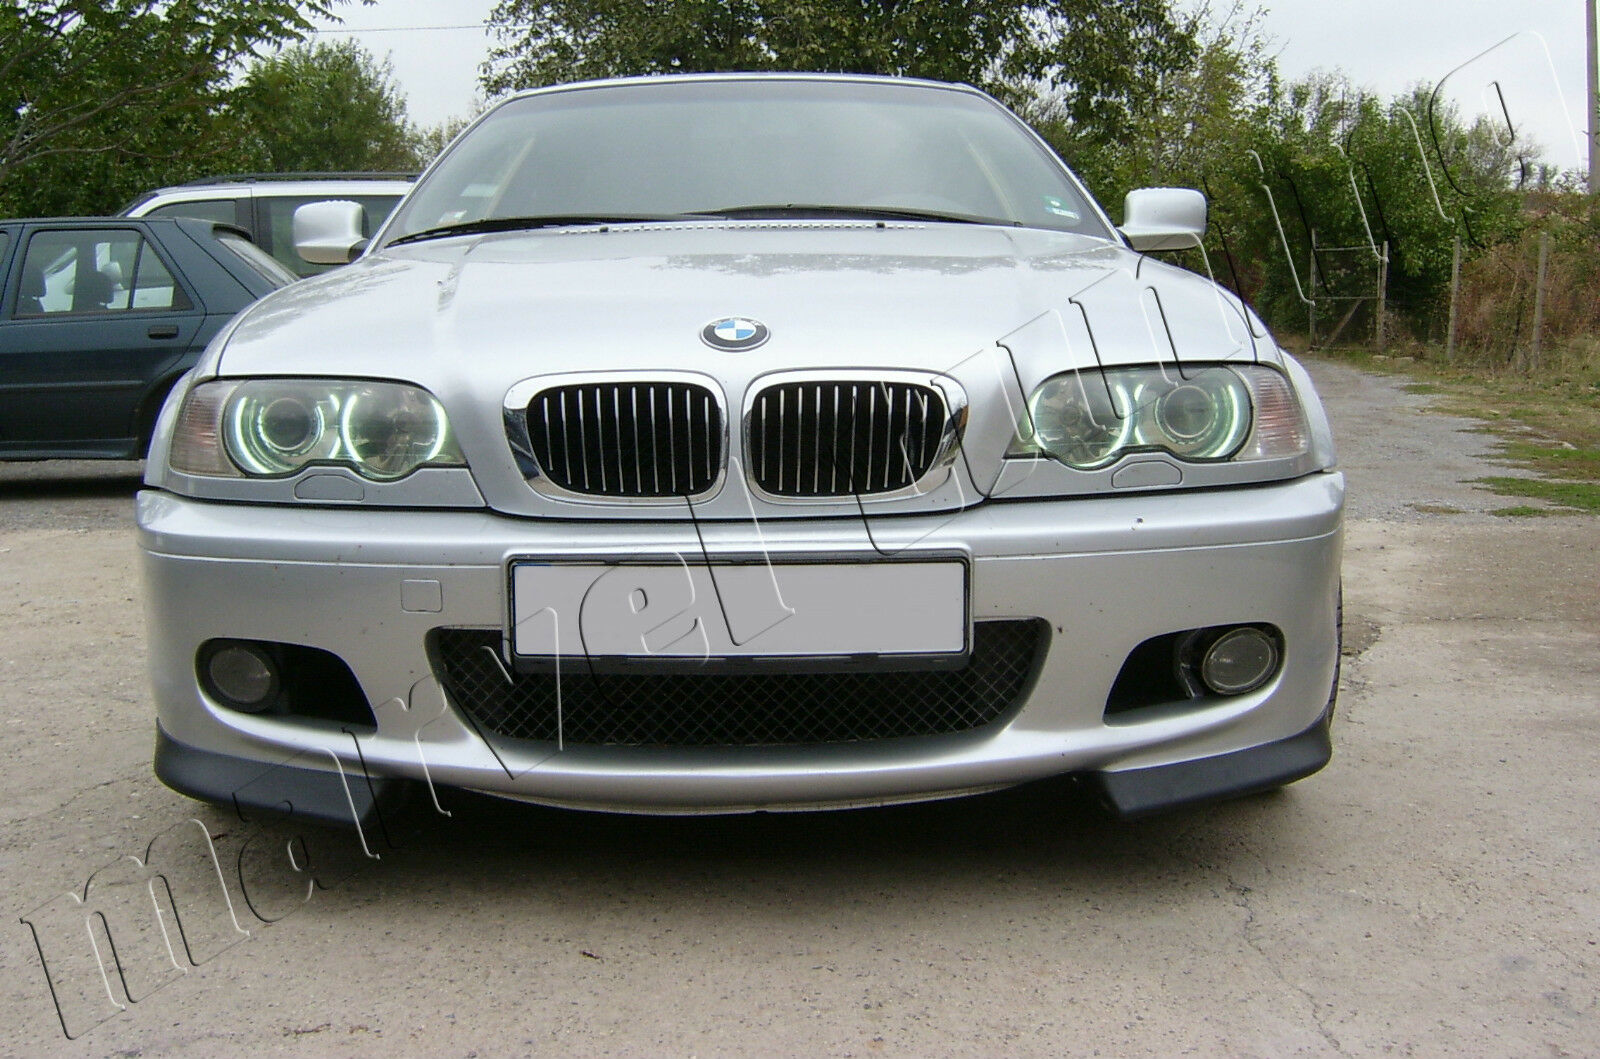 bmw e46 3 series m tech m sport front bumper splitter spoiler picclick uk. Black Bedroom Furniture Sets. Home Design Ideas